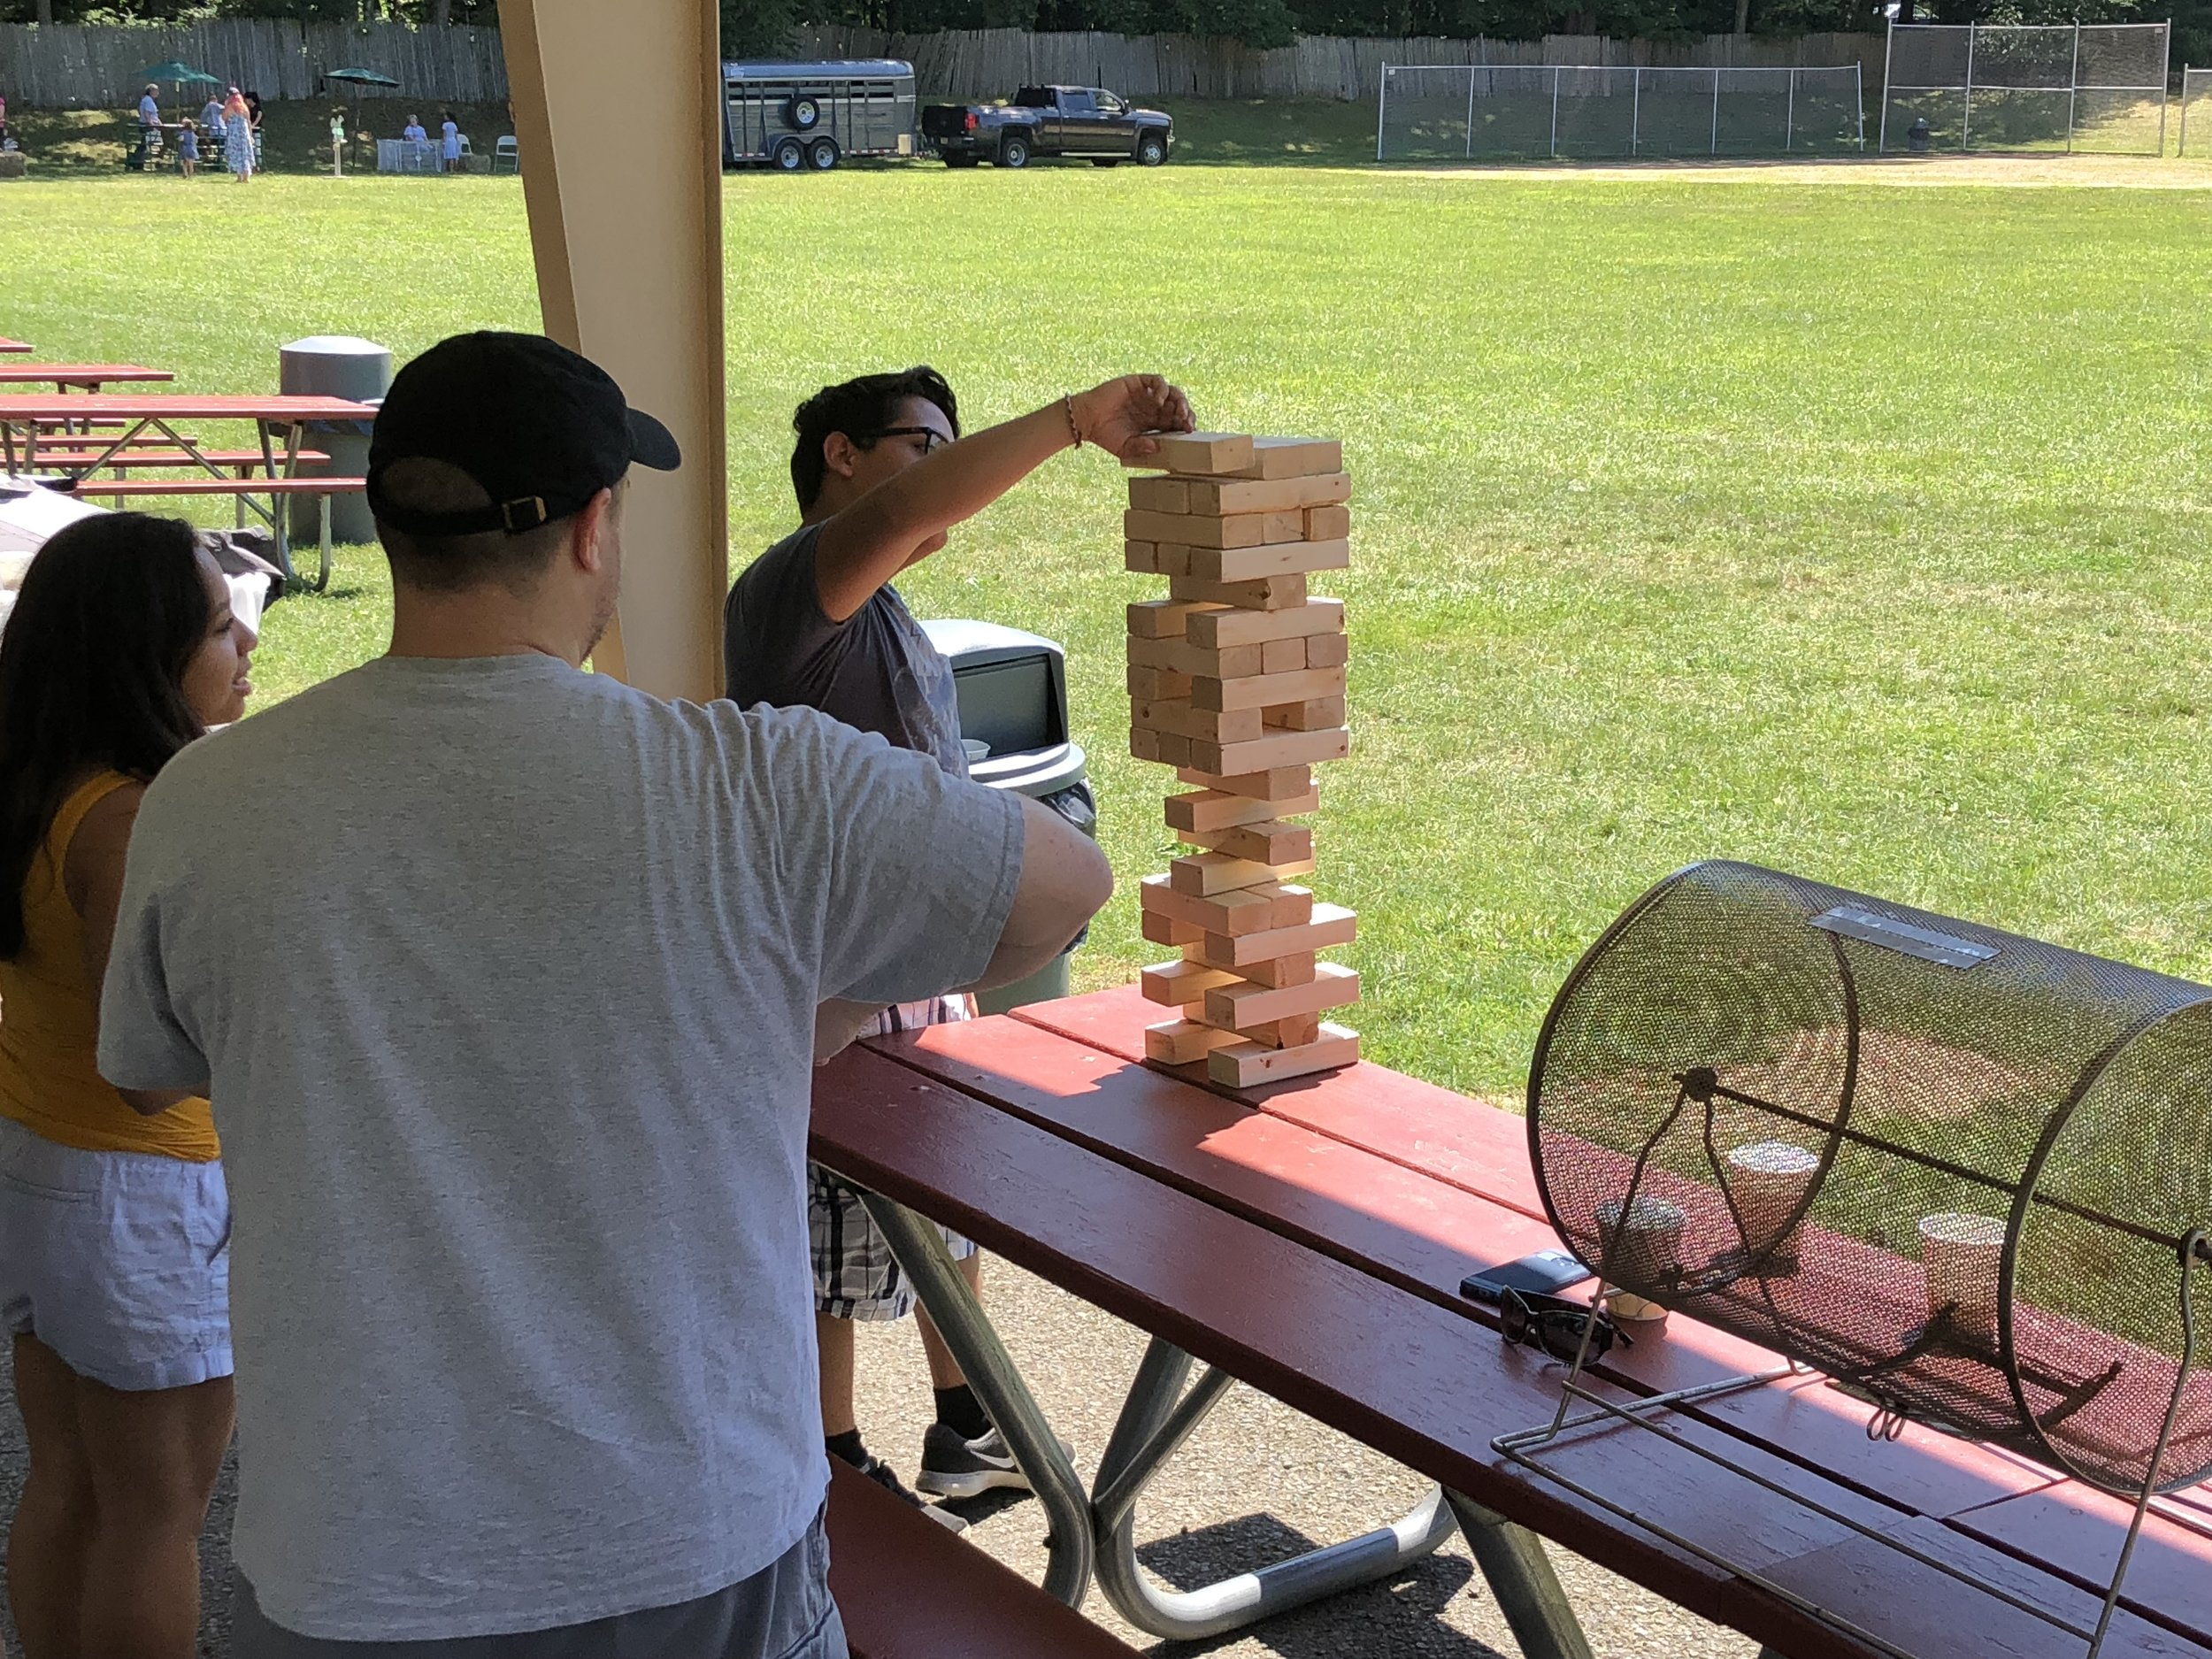 Giant Jenga - Let us bring our oversized version of a new picnic classic game!